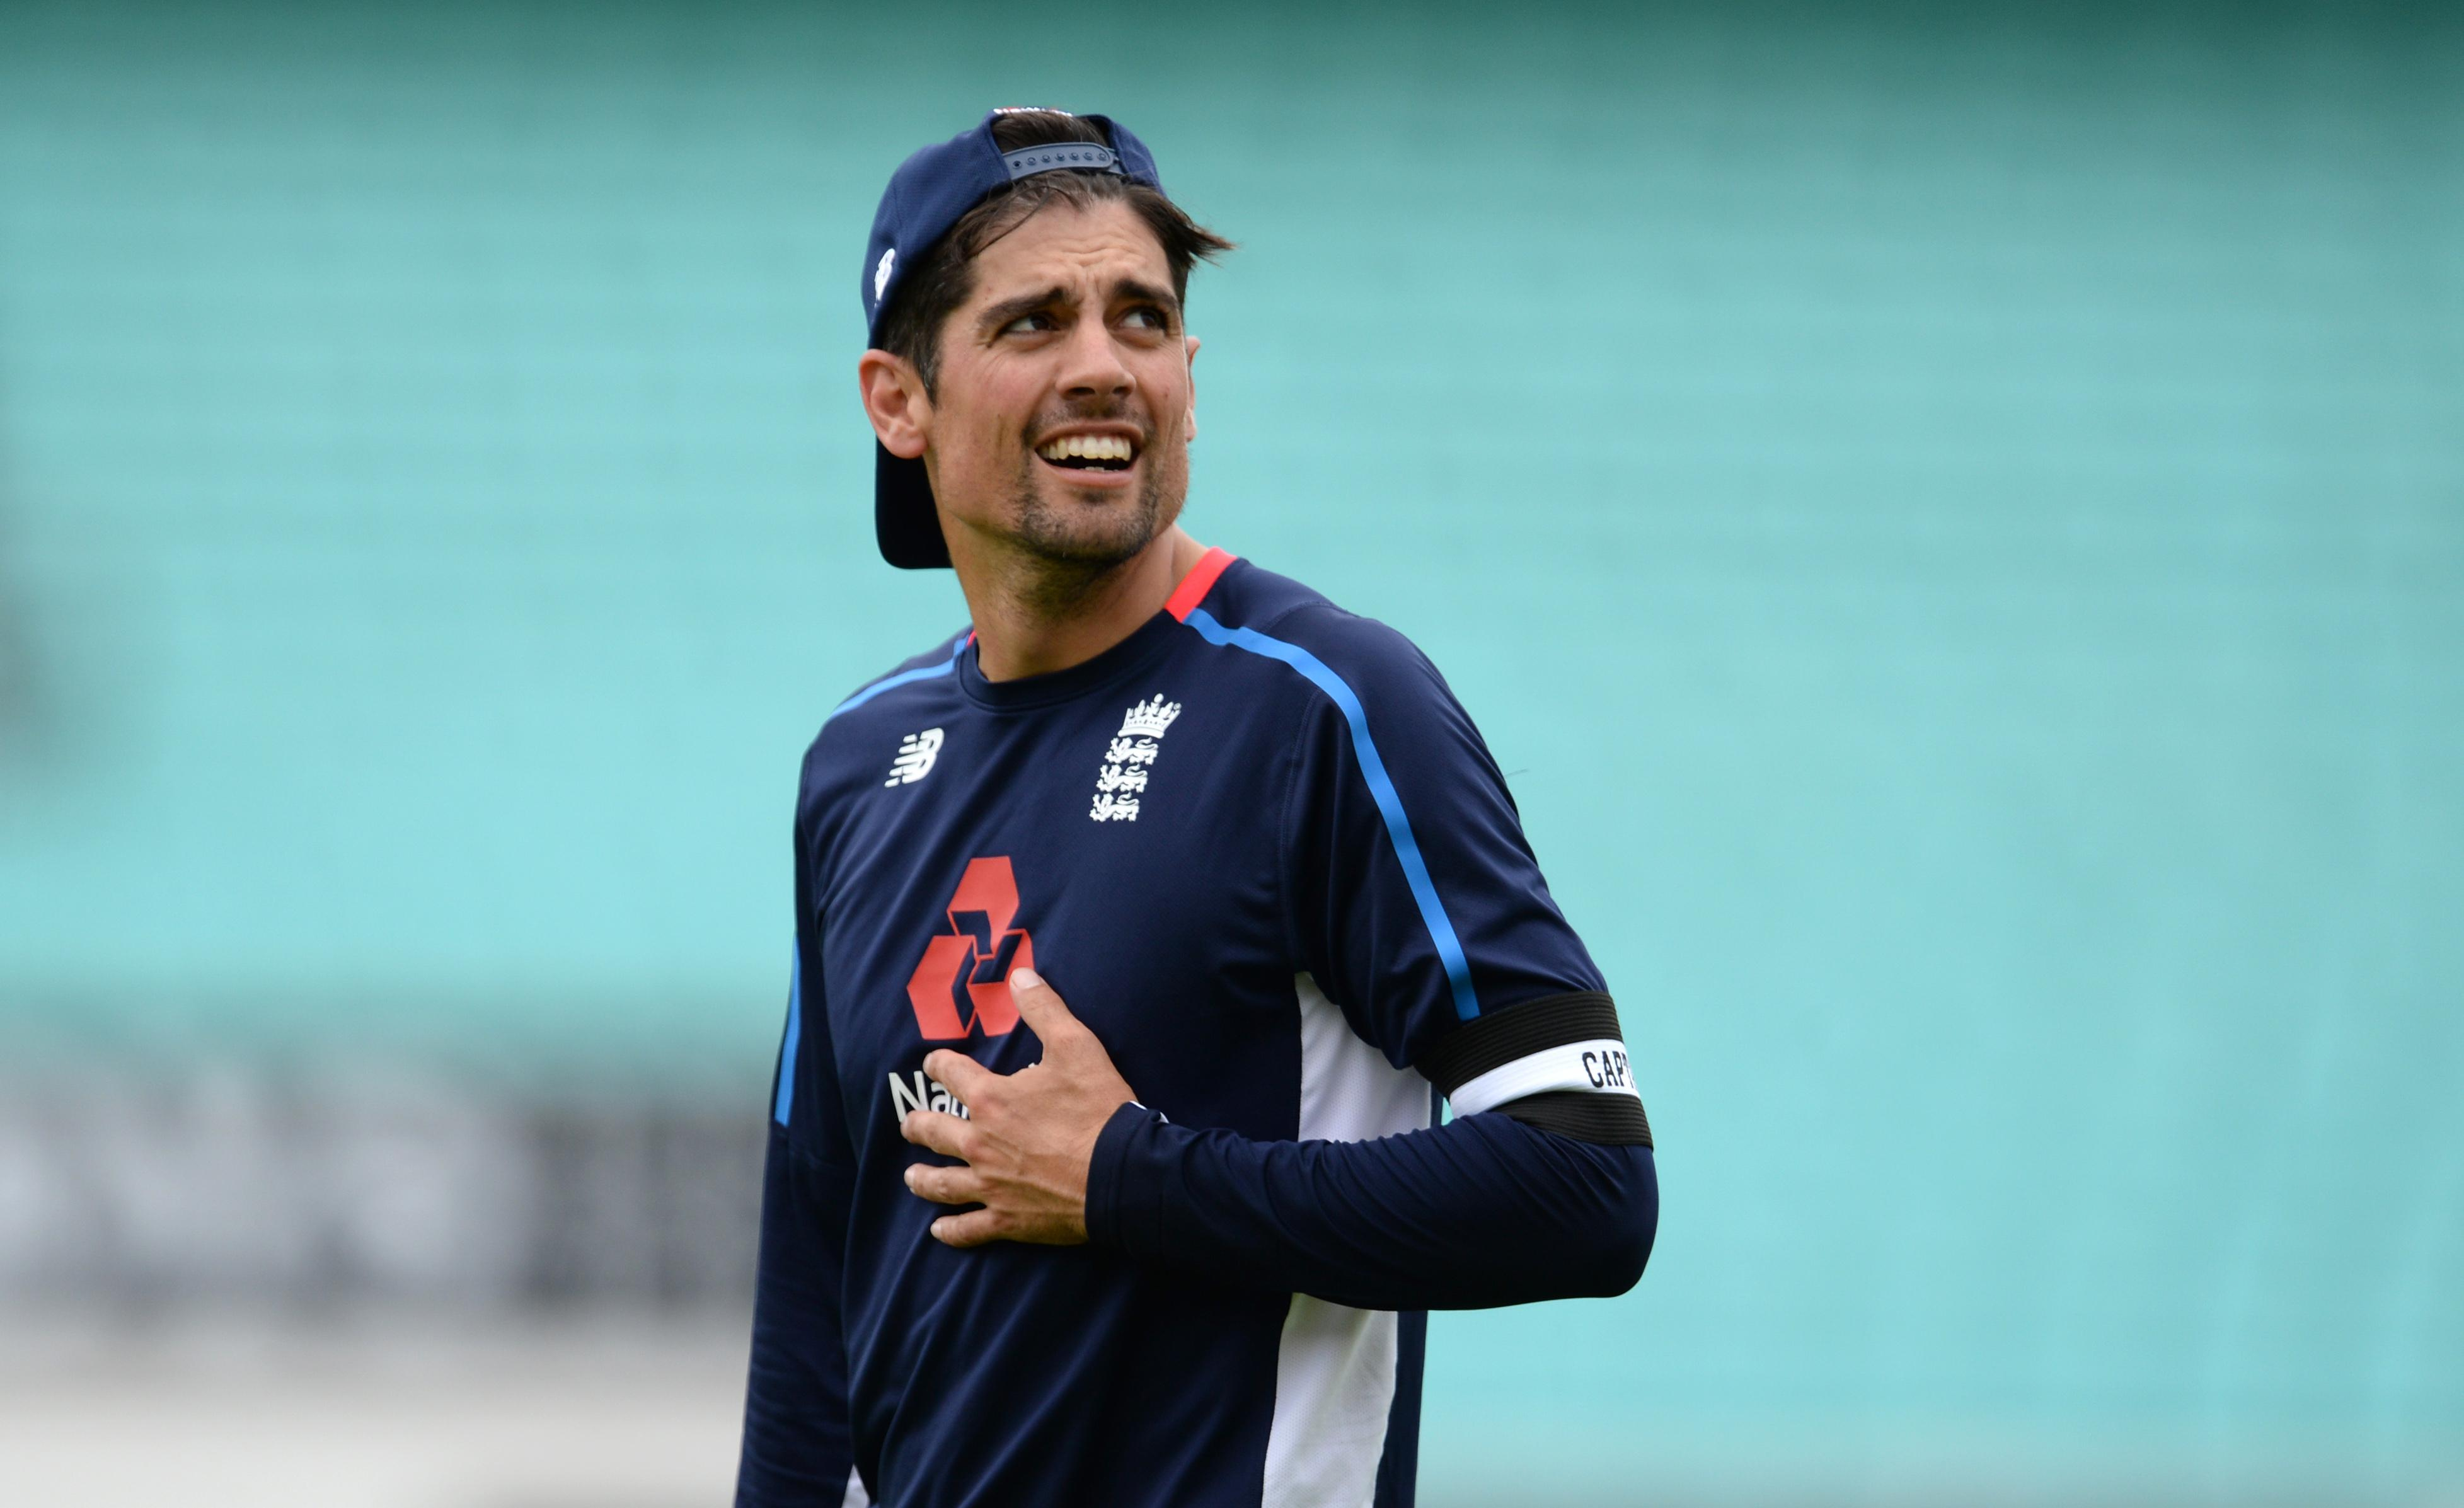 Cook is preparing to face India in what will be the final Test match of his brilliant career